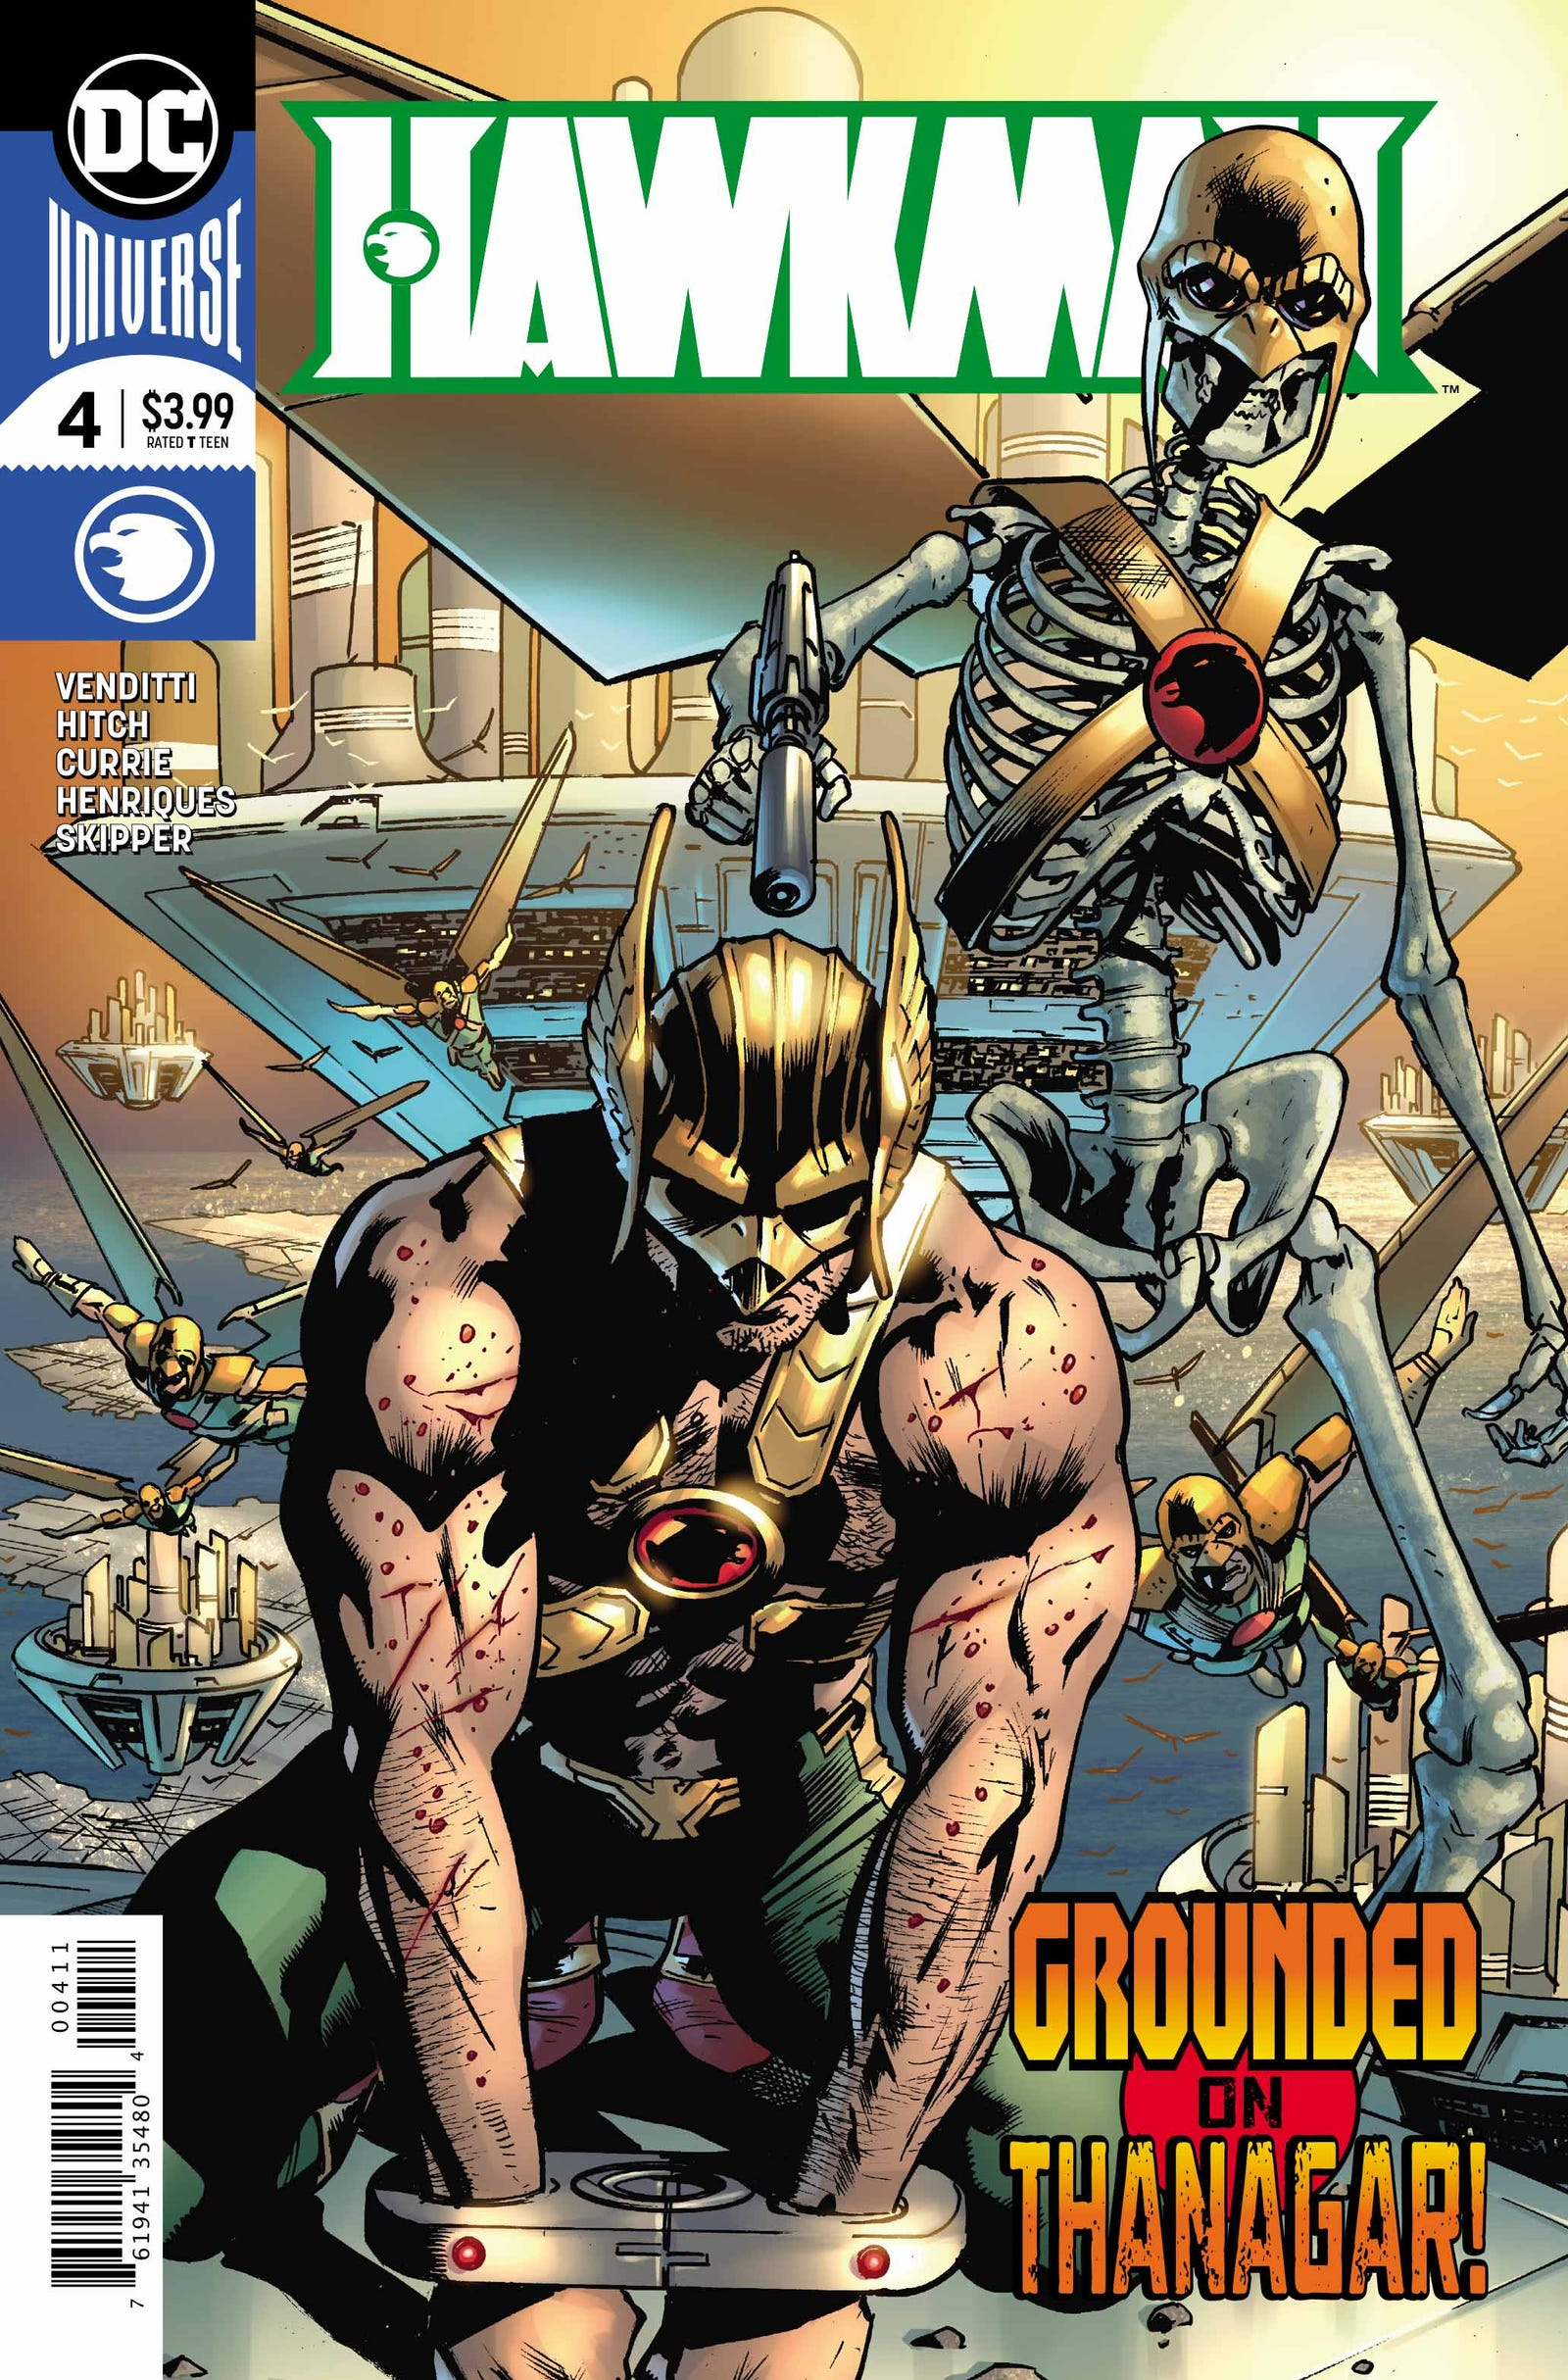 Cover by Bryan Hitch and Alex Sinclair